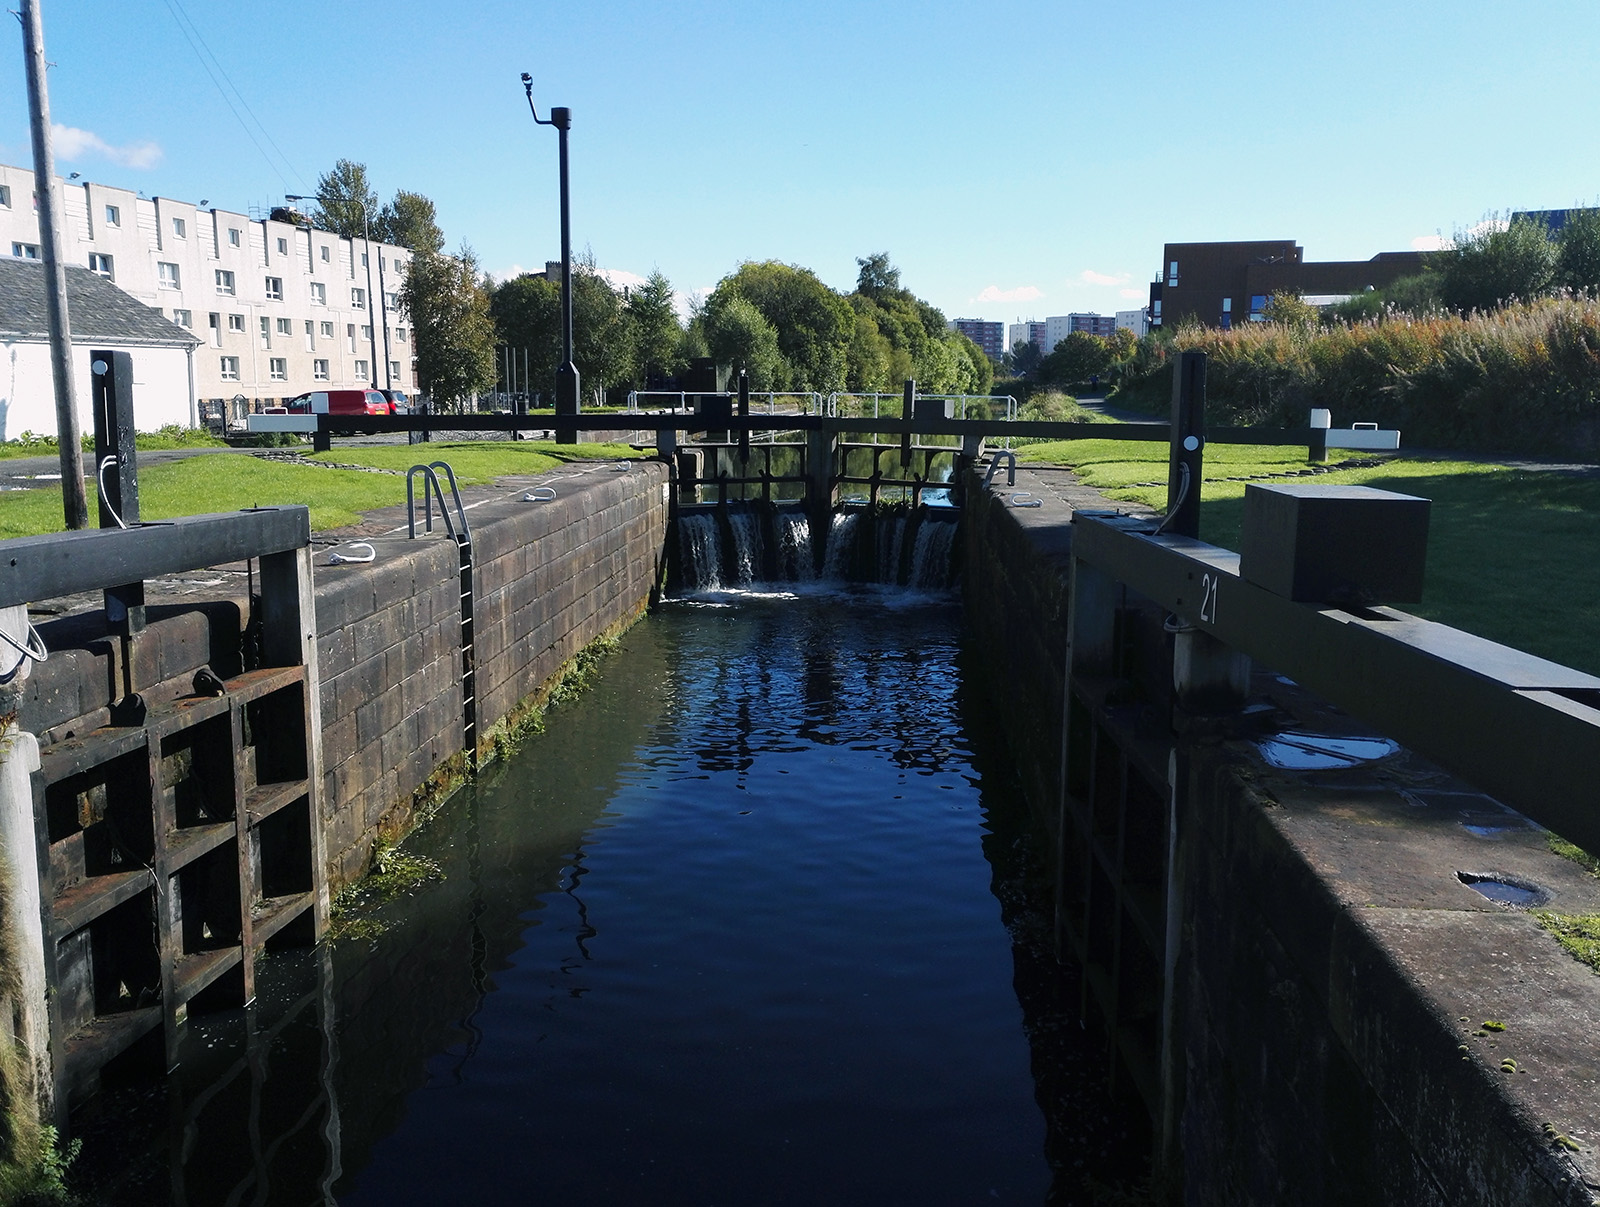 Forth and Clyde Canal (Scotland)